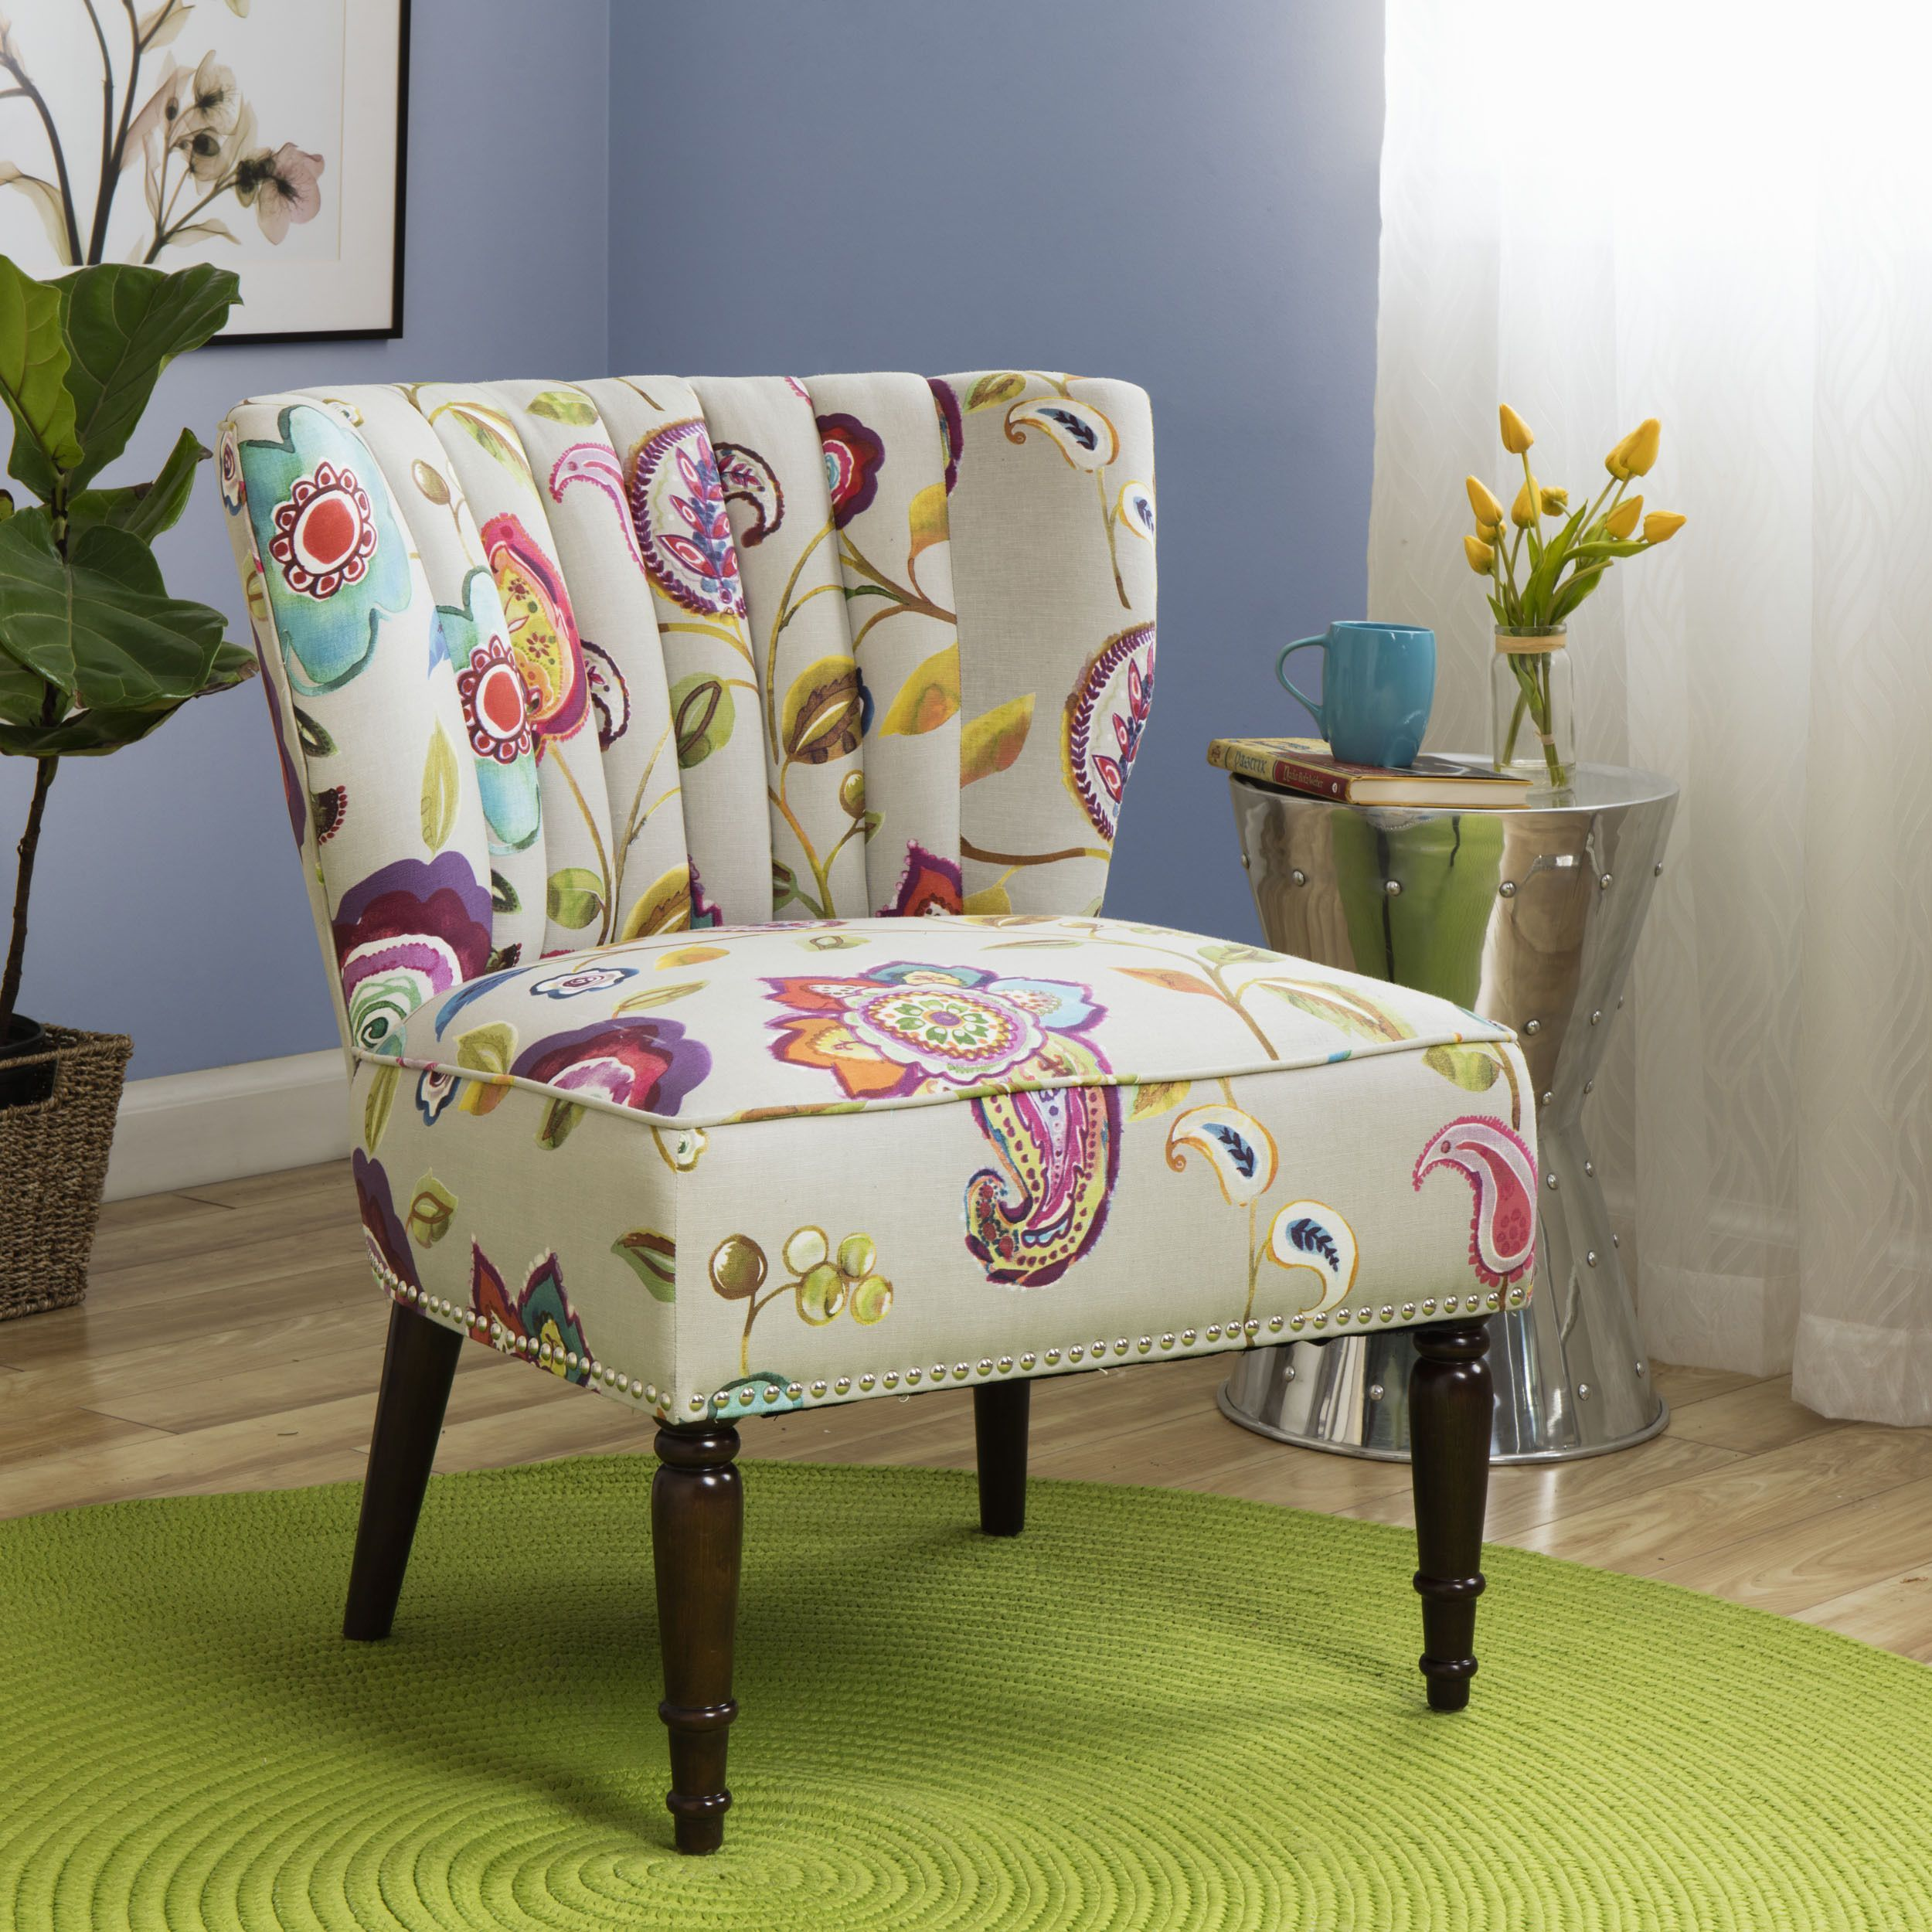 Create a vivacious display in your home with this Tori chair